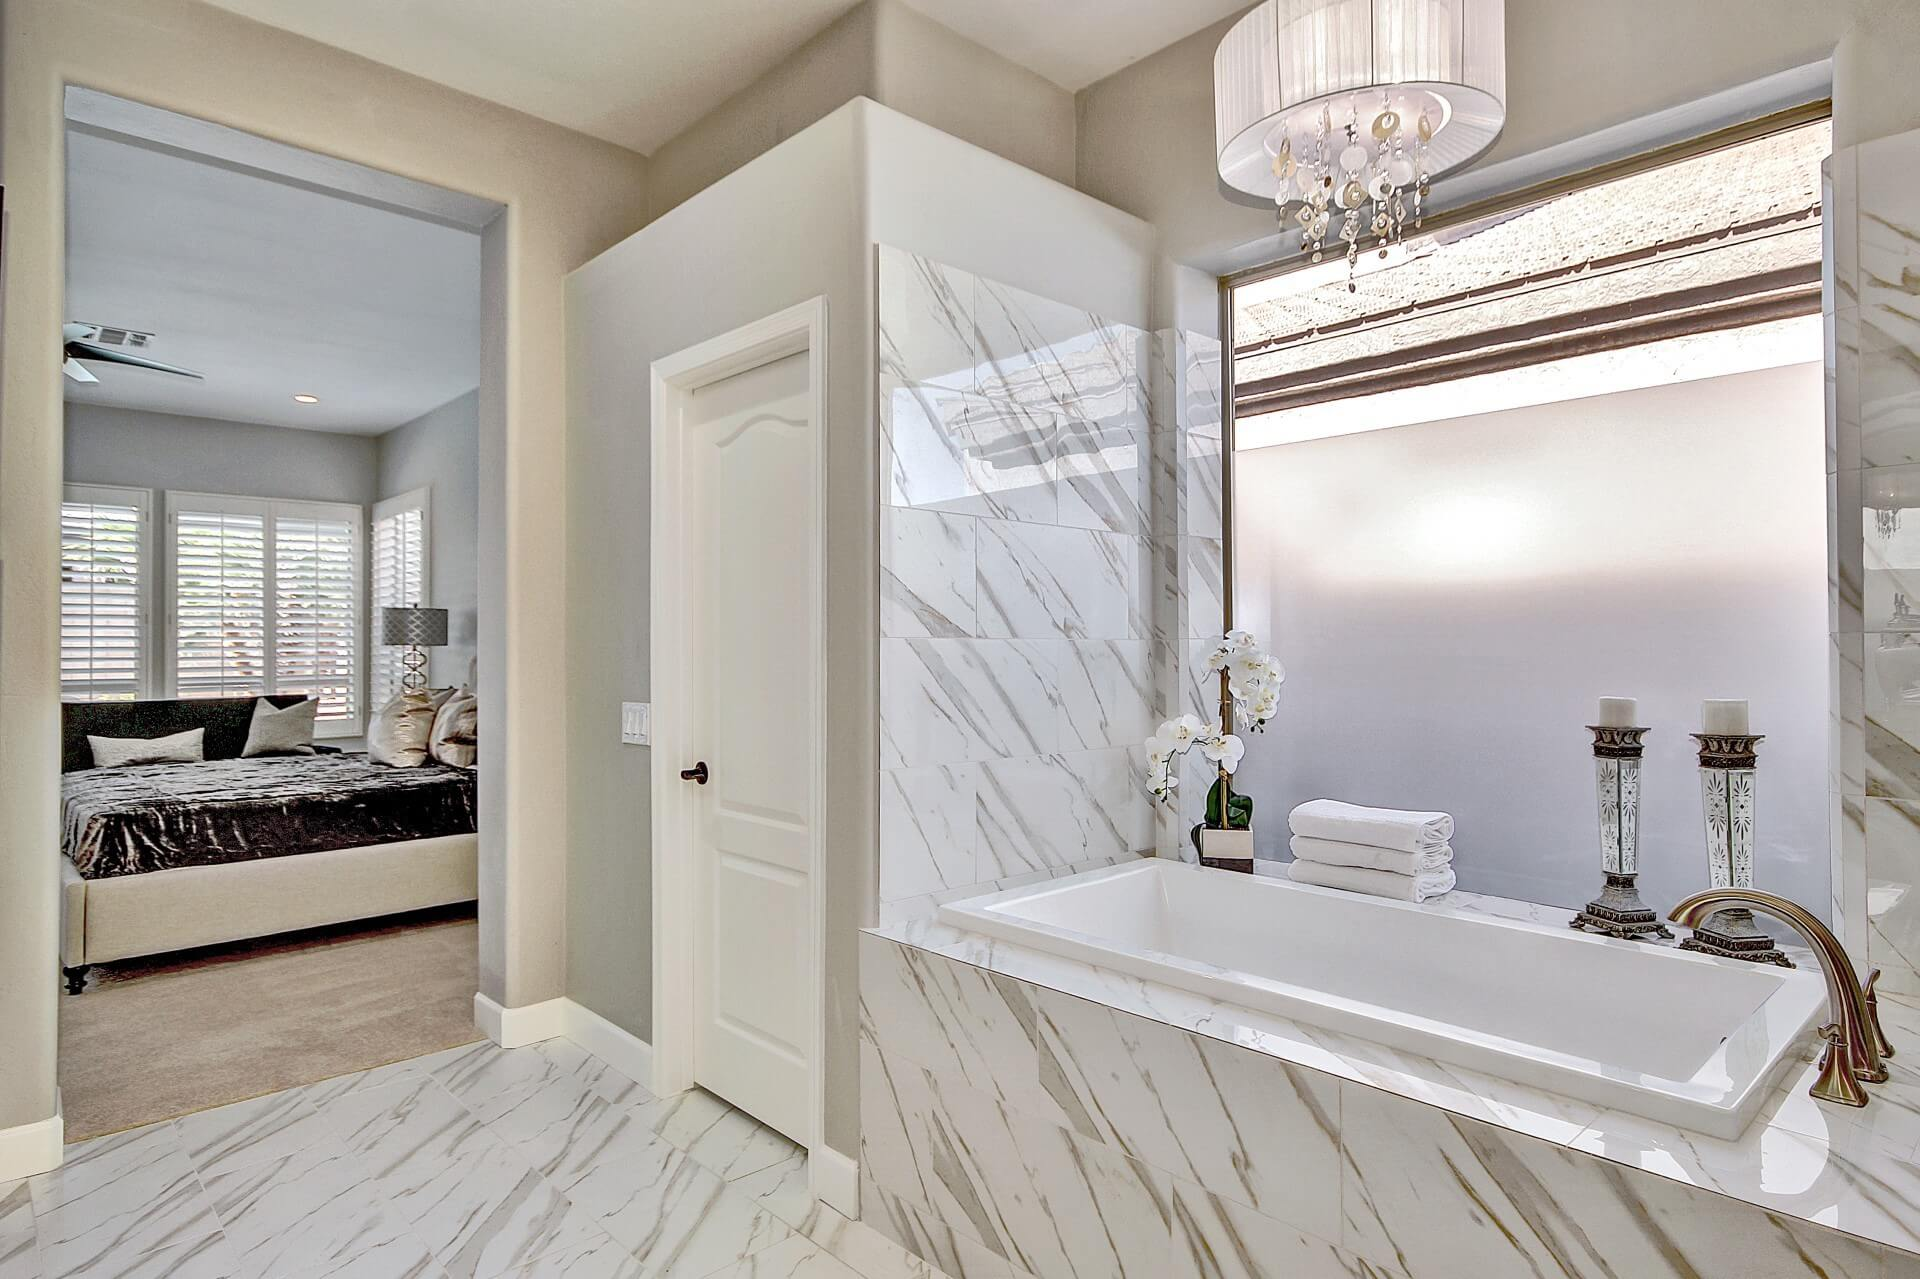 Bathroom Cabinets, Countertops and Vanities in Scottsdale AZ 1